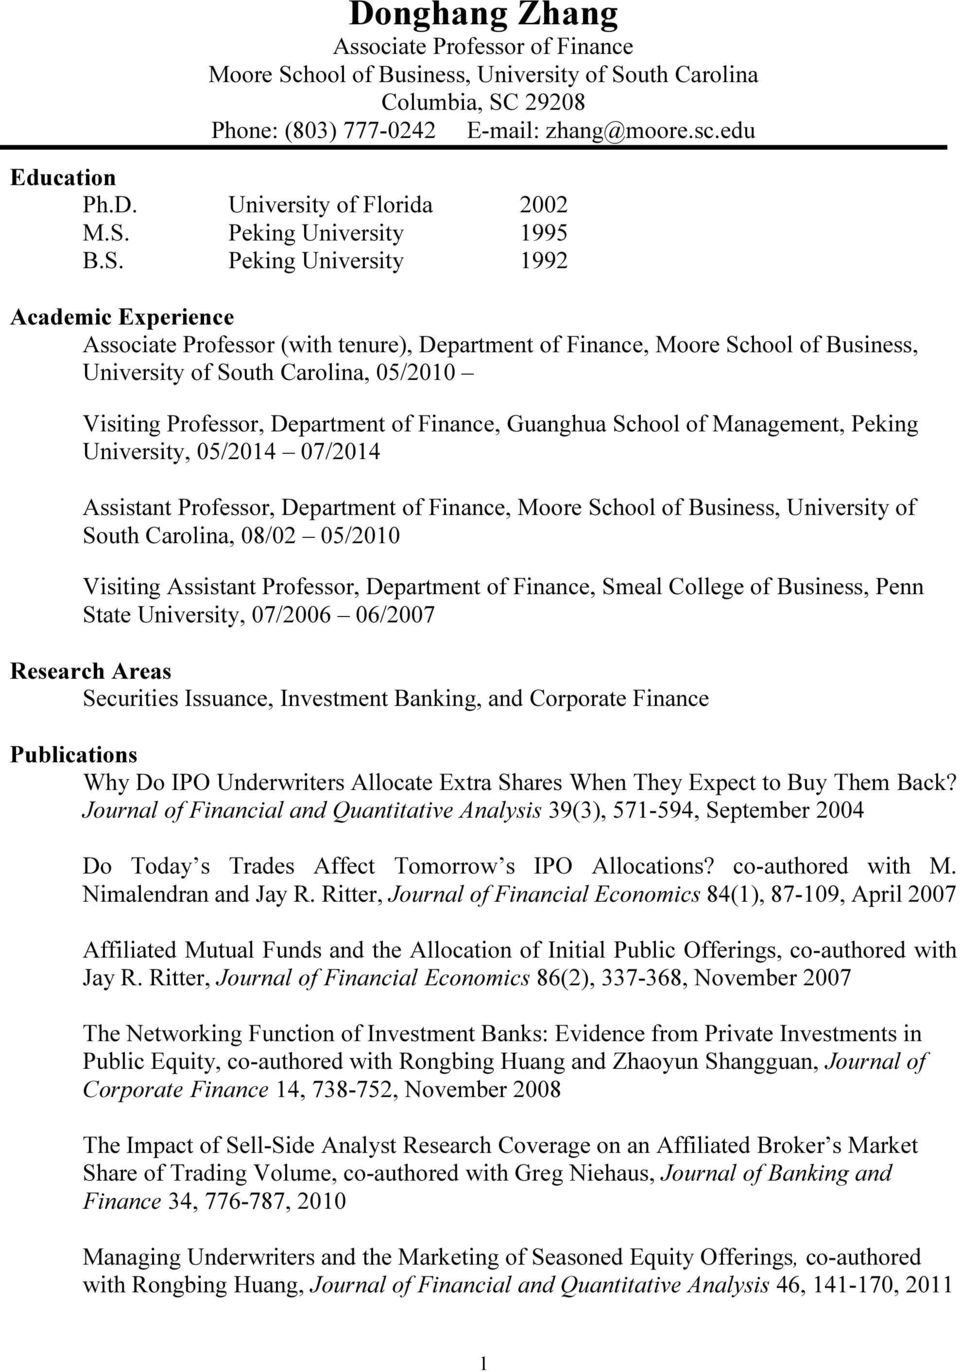 Visiting Professor, Department of Finance, Guanghua School of Management, Peking University, 05/2014 07/2014 Assistant Professor, Department of Finance, Moore School of Business, University of South